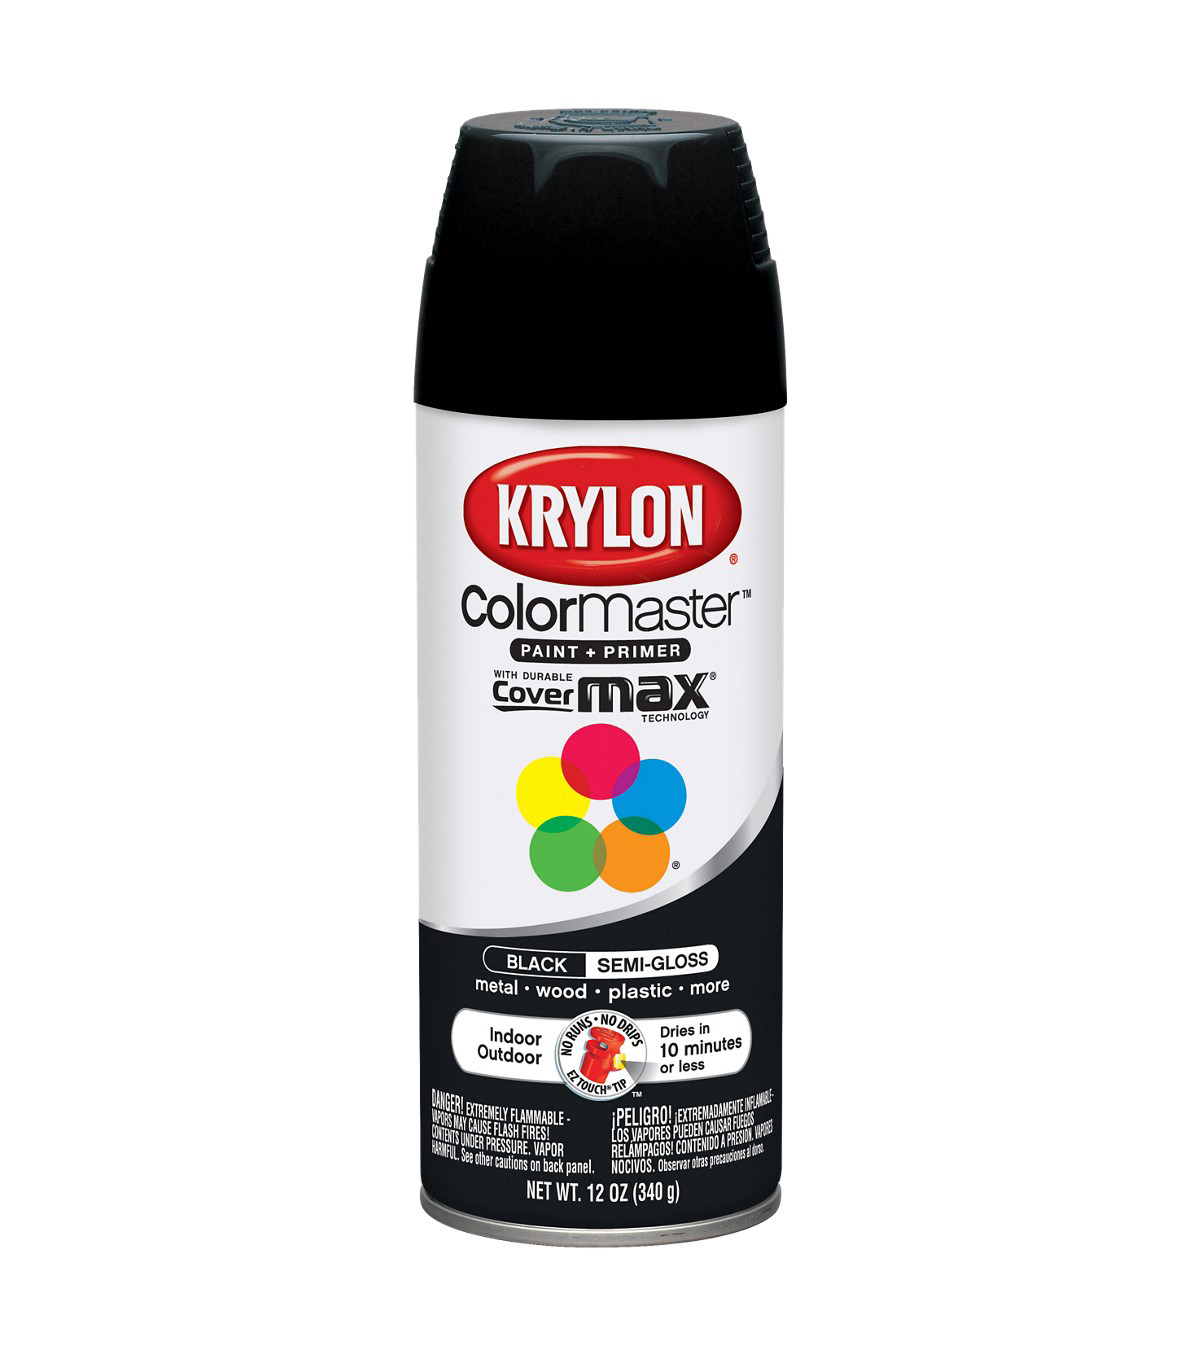 Krylon ColorMaster 12 oz. Indoor/Outdoor Semi-Gloss Paint + Primer-Black